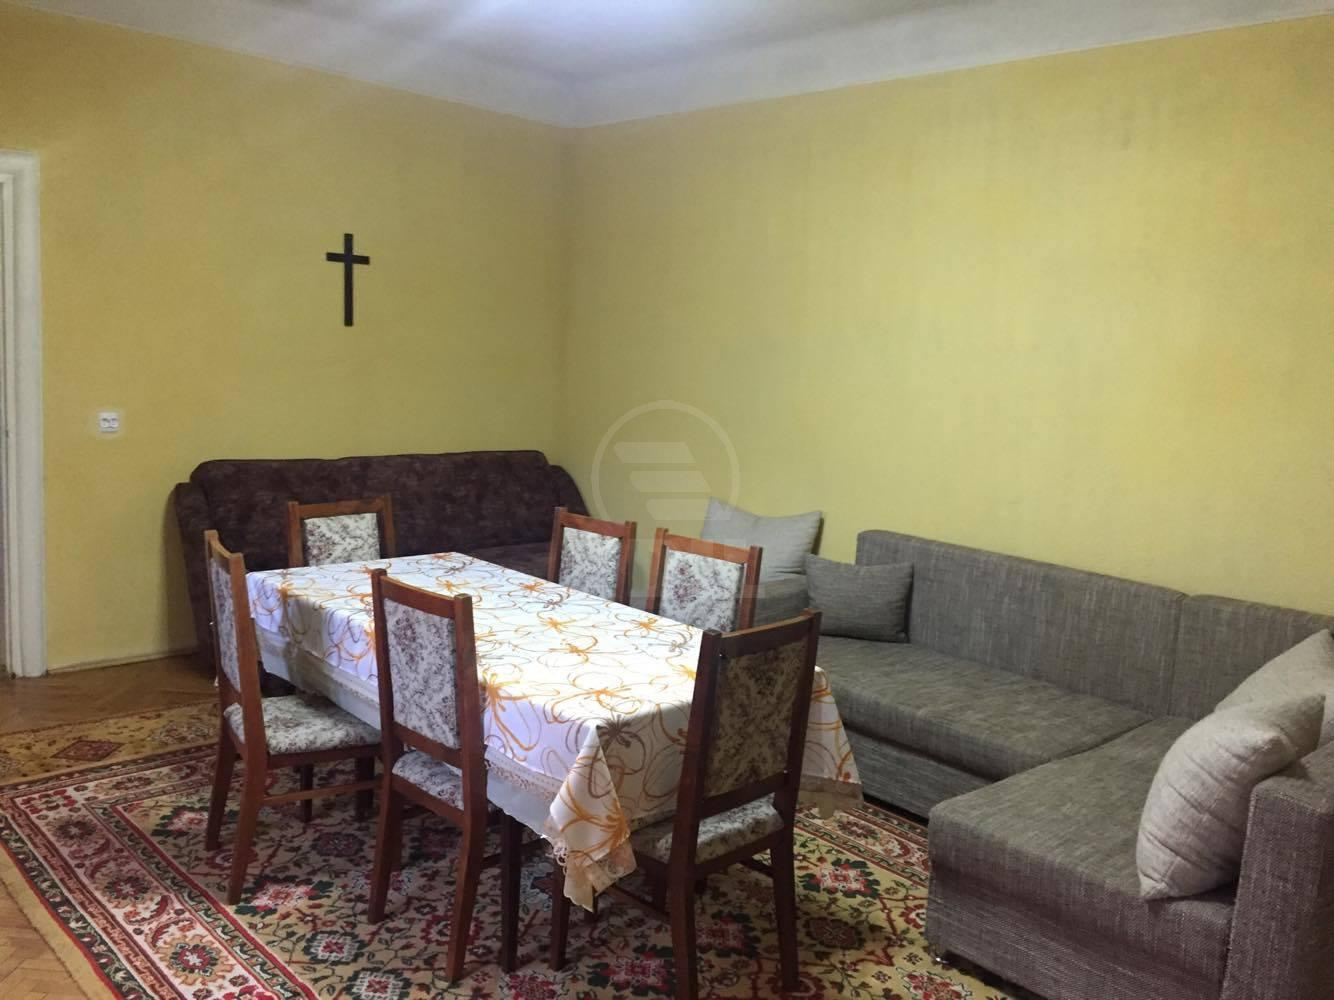 Apartment for rent 3 rooms, APCJ281600-19